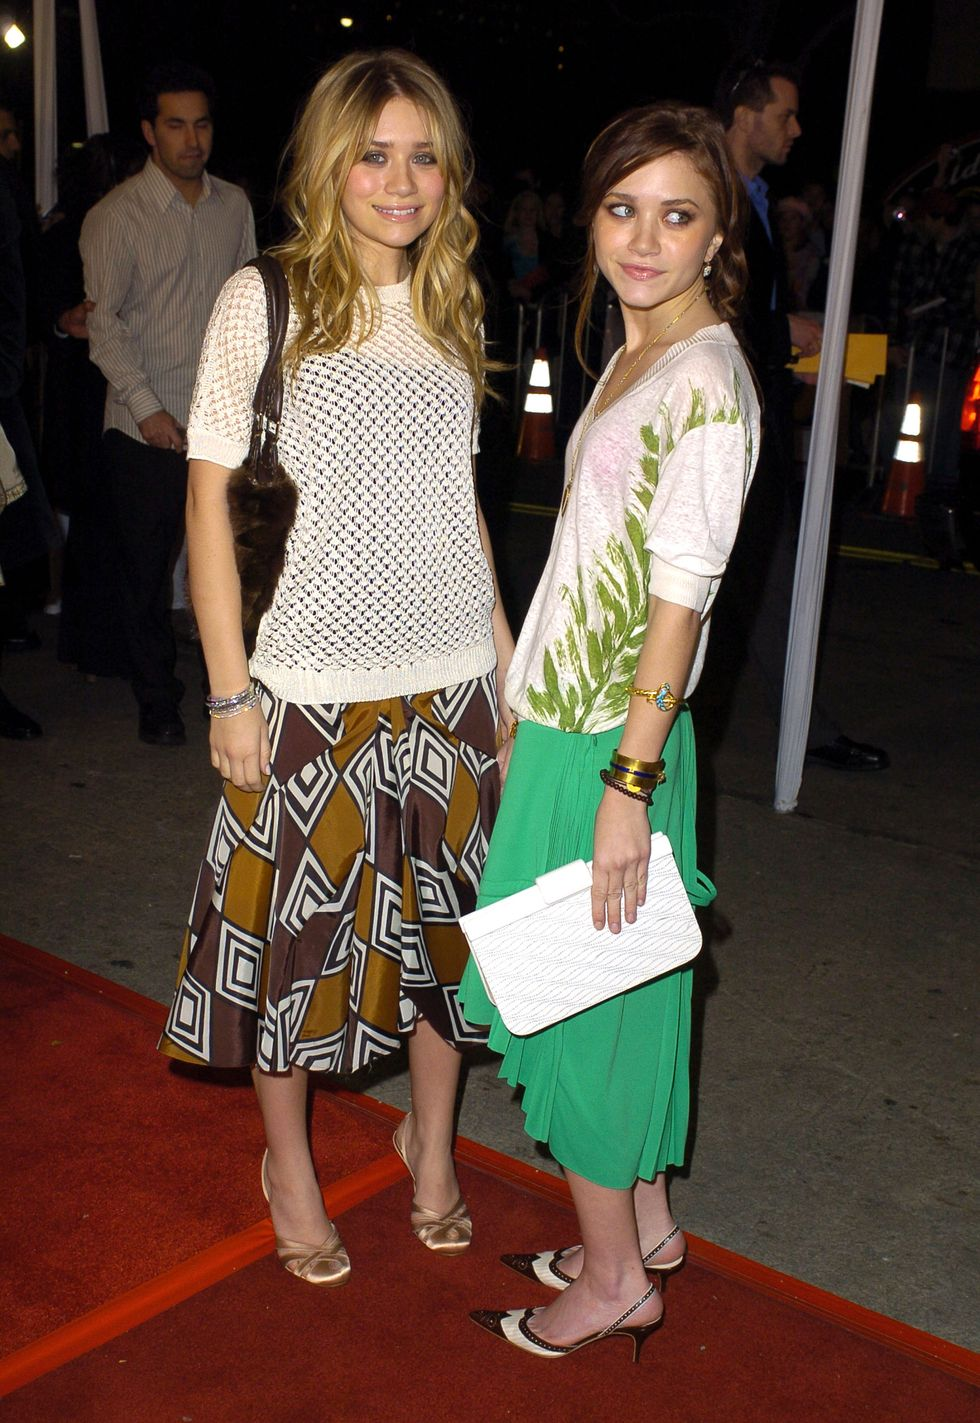 February 26, 2004 For the premiere of Starsky & Hutch , Mary-Kate and Ashley went for a simple look and both wore a white t-shirt and skirt combo.